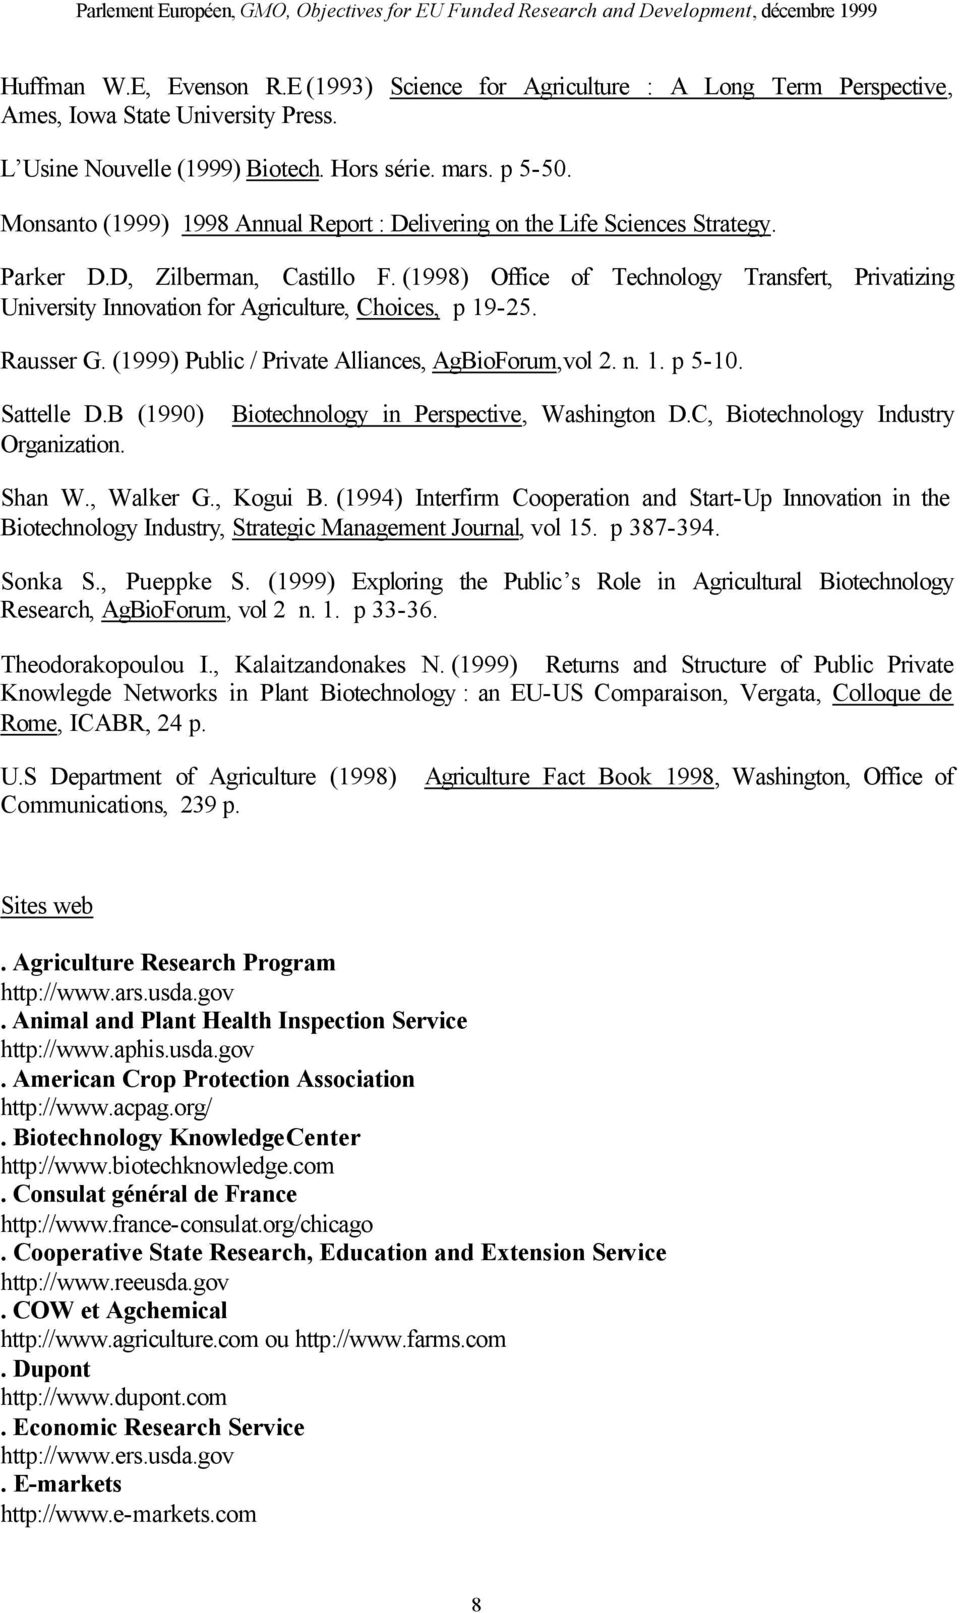 (1998) Office of Technology Transfert, Privatizing University Innovation for Agriculture, Choices, p 19-25. Rausser G. (1999) Public / Private Alliances, AgBioForum,vol 2. n. 1. p 5-10. Sattelle D.